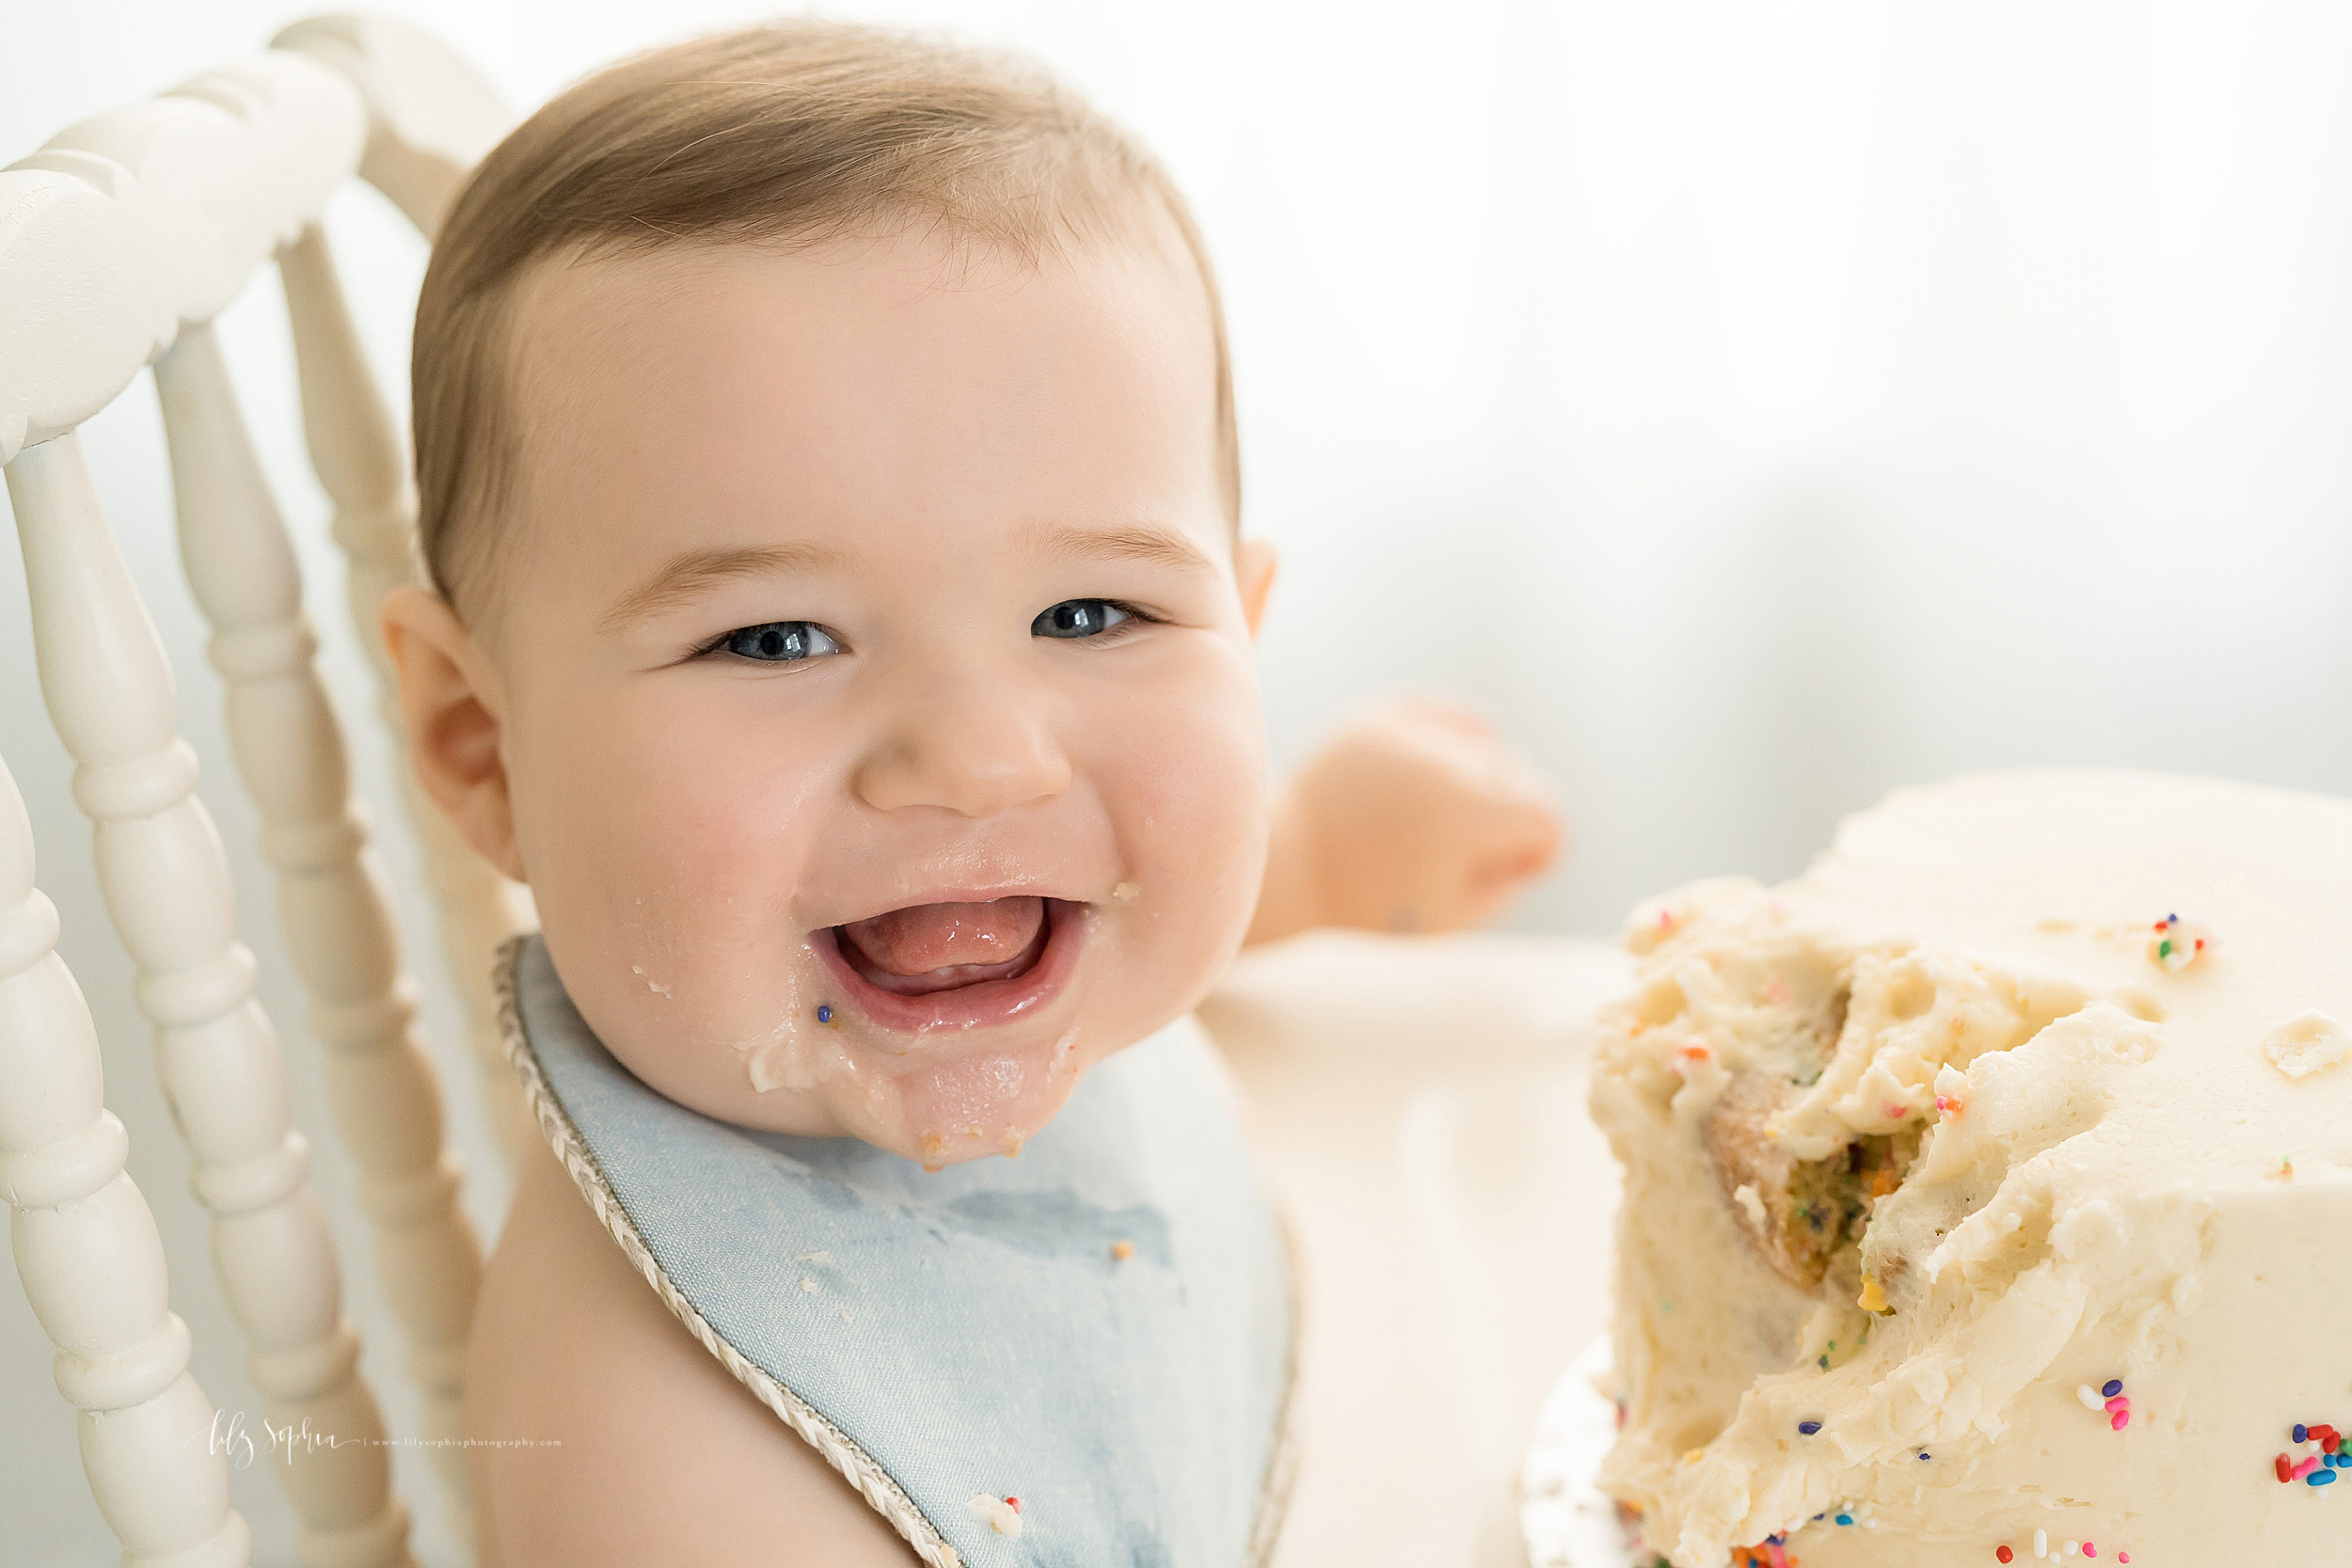 Milestone photo of a bright-eyed one year old boy with icing all over his face as he sits in a highchair with his birthday cake in Atlanta, Georgia.